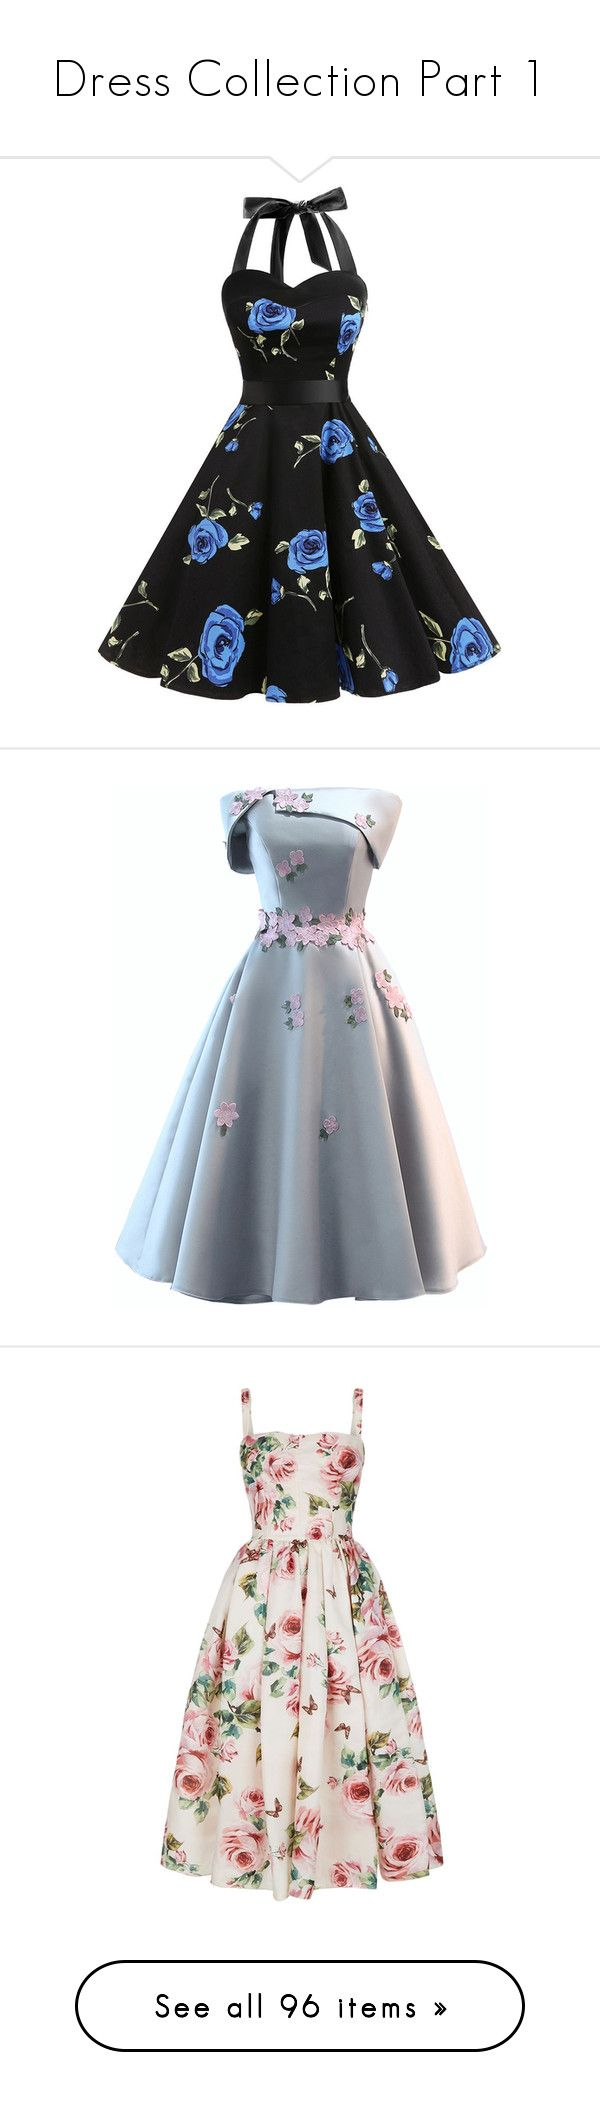 """""""Dress Collection Part 1"""" by waddlesthepig ❤ liked on Polyvore featuring dresses, vintage prom dresses, retro dresses, retro vintage dresses, polka dot prom dress, rockabilly dresses, vestidos curtos, grey prom dresses, prom dresses and floral dresses"""